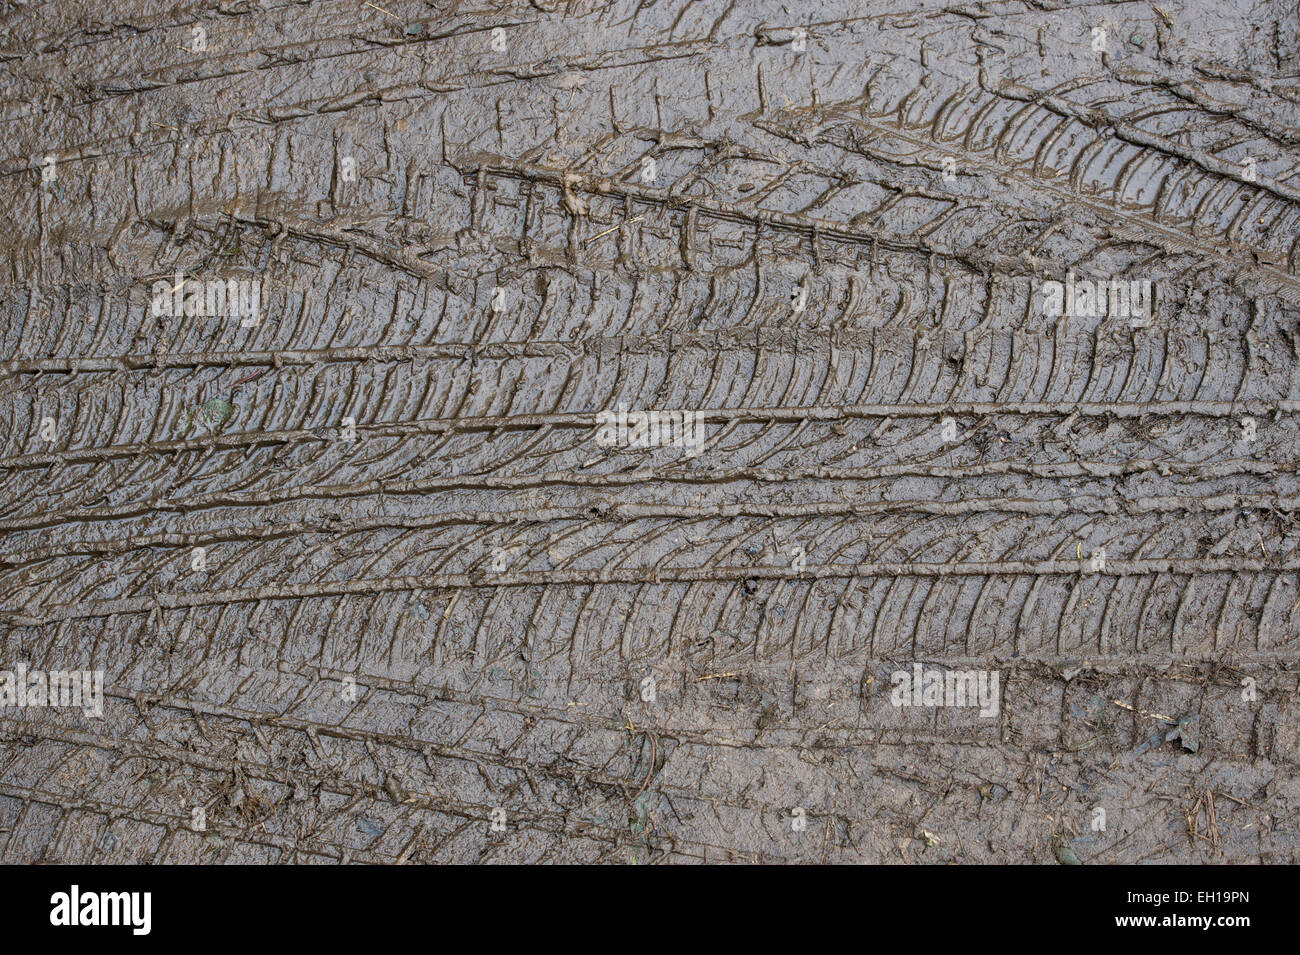 Tyre tracks in the mud - Stock Image